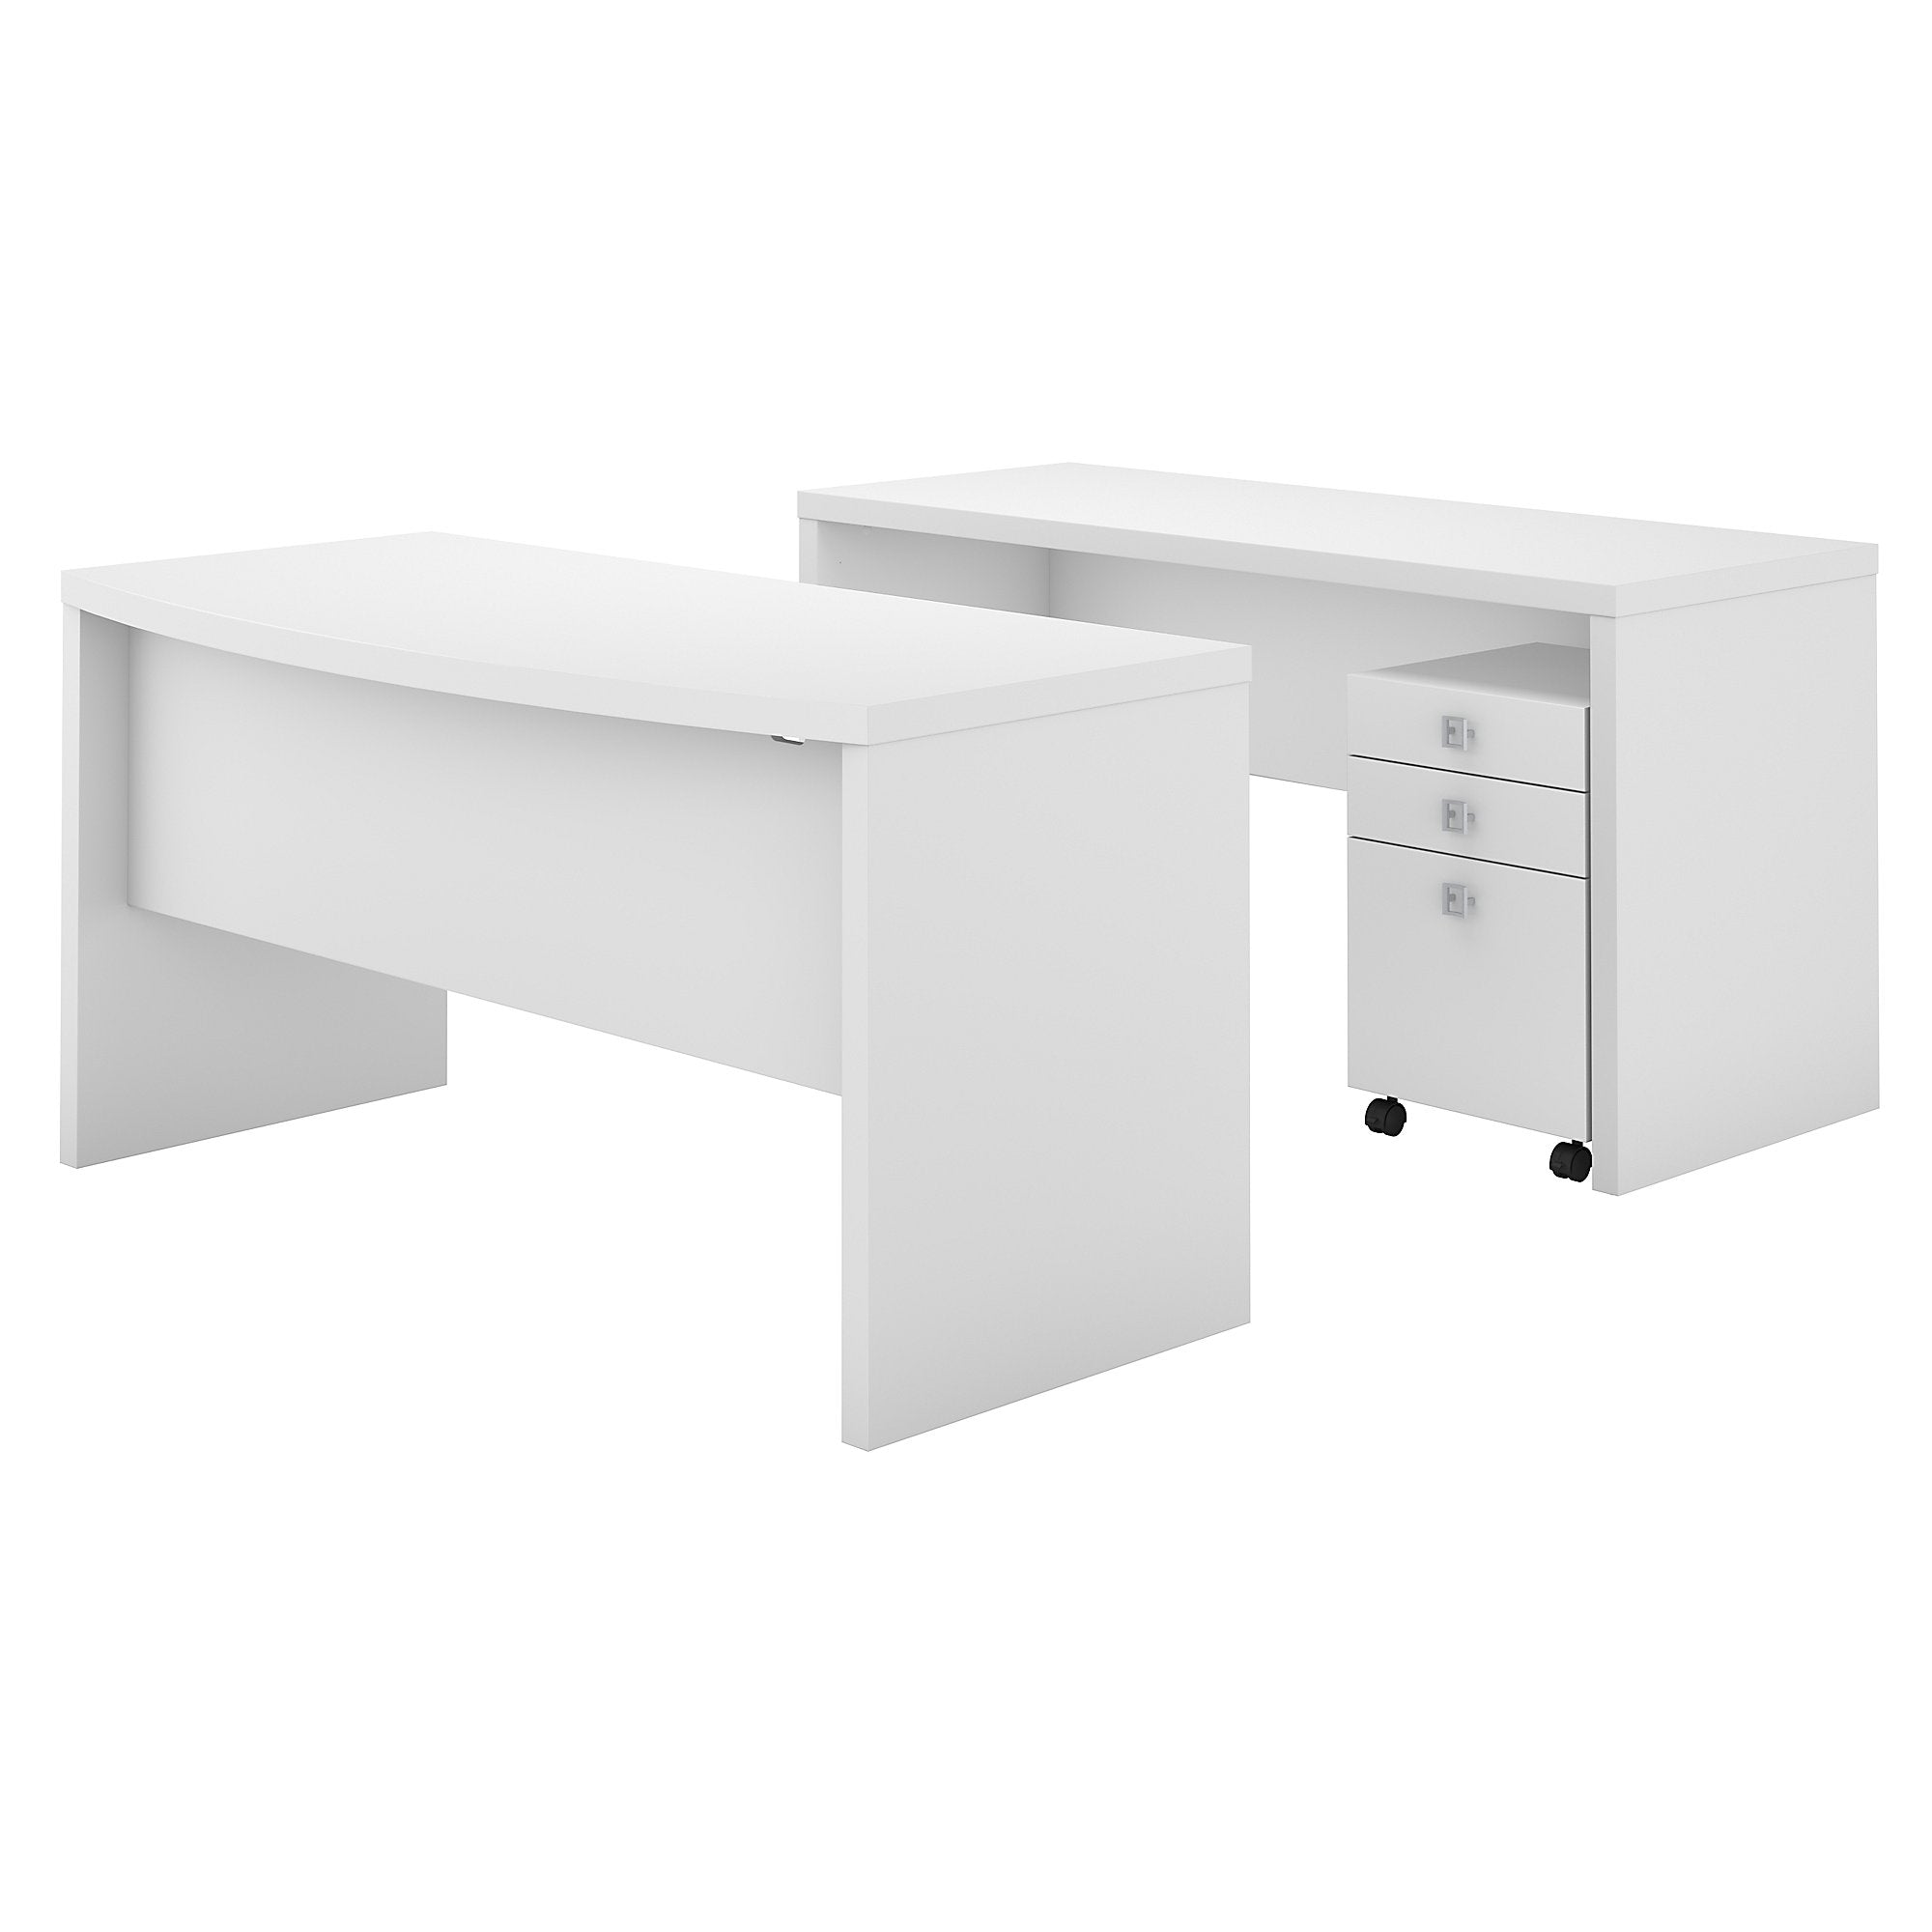 Office by kathy ireland® Echo Bow Front Desk and Credenza with Mobile File Cabinet | Pure White